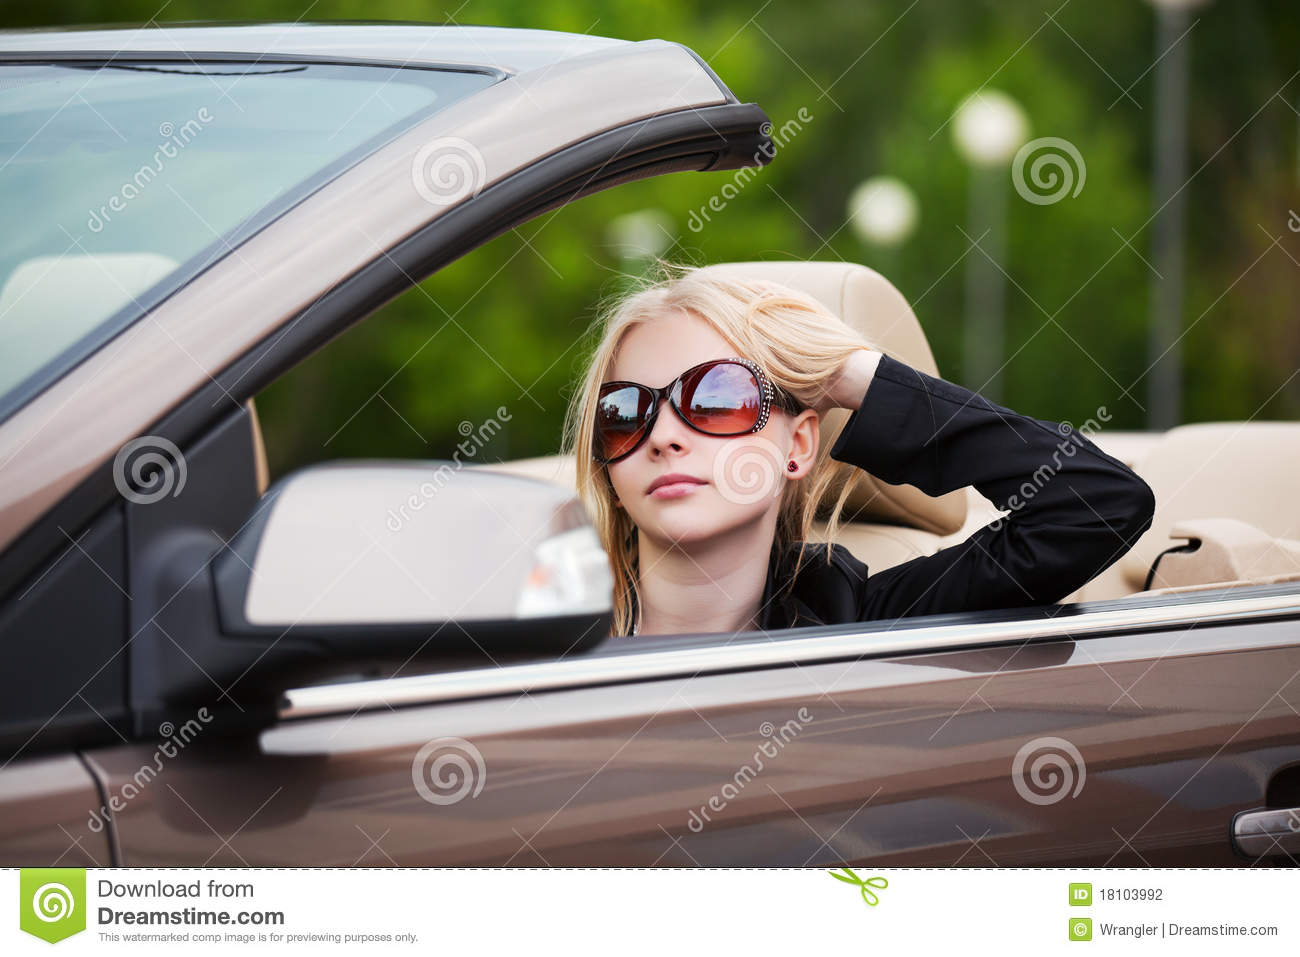 Are not Video naked girl driving convertible cars confirm. happens